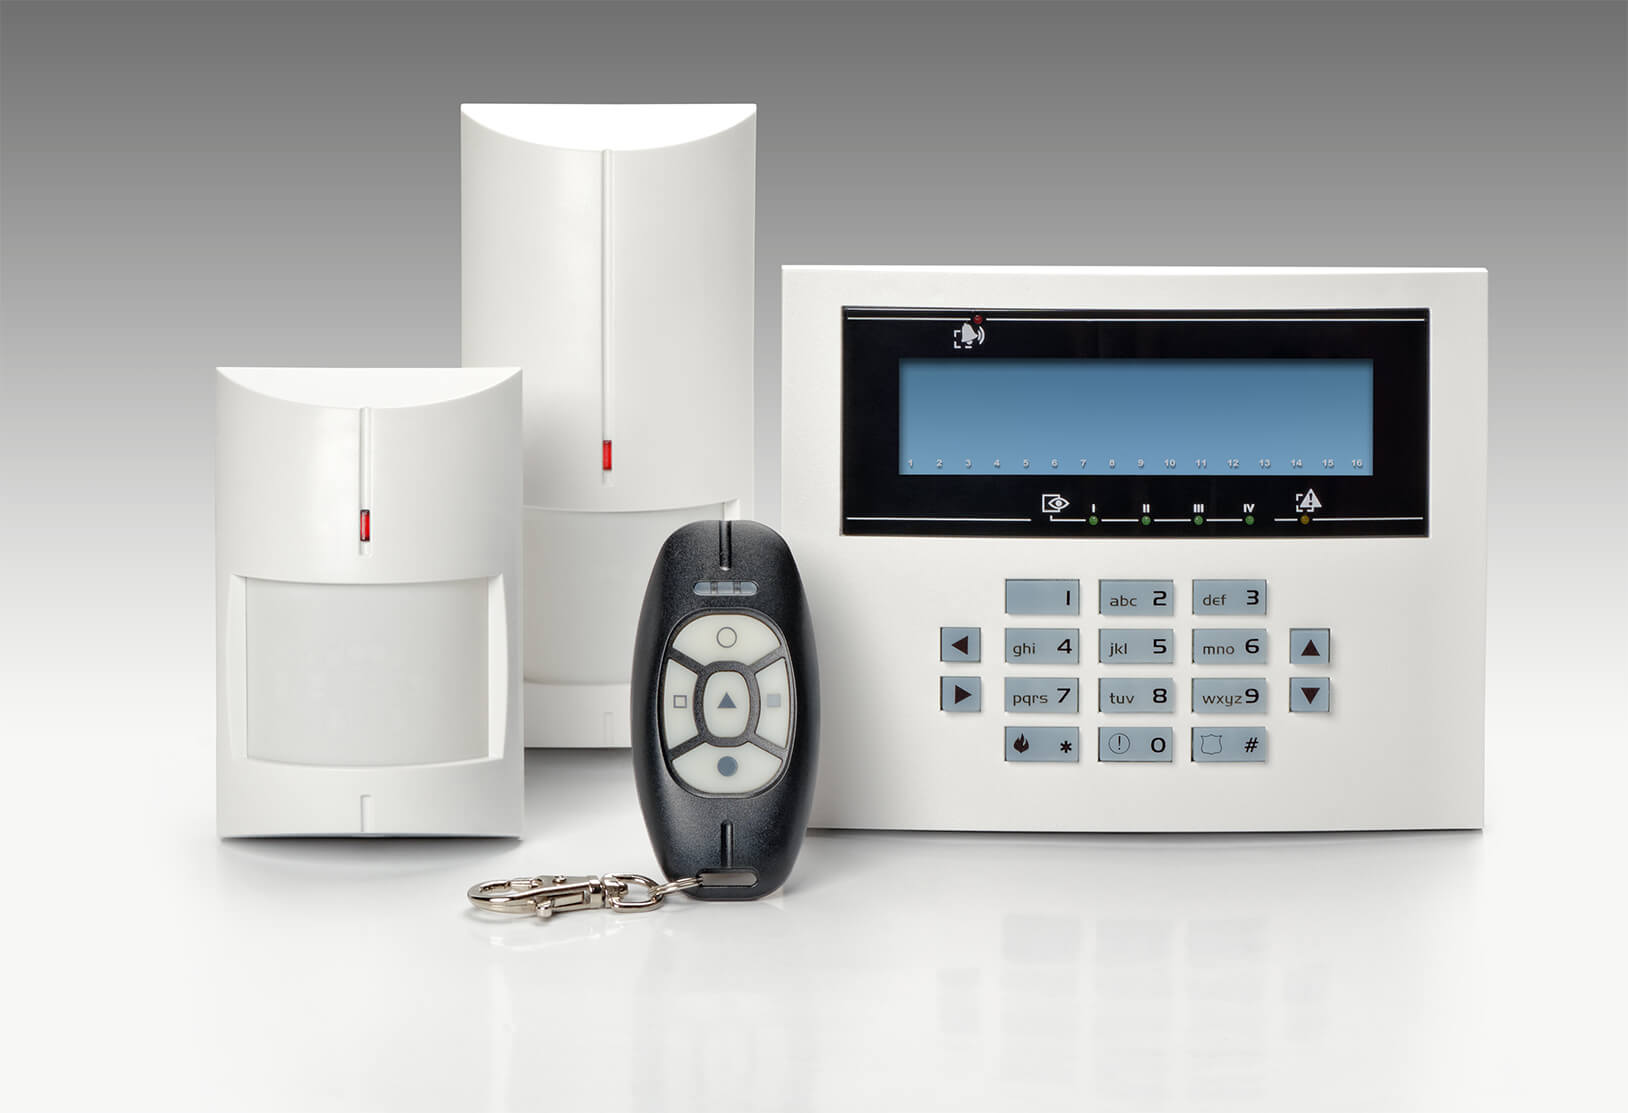 Business & Residential NSI / NACOSS Approved Burglar Alarms In Shoreditch EC1 - Local Shoreditch EC1 security company.Call 02078872244 - Dedicated to Safety & Security. Companies, shops and homes ..